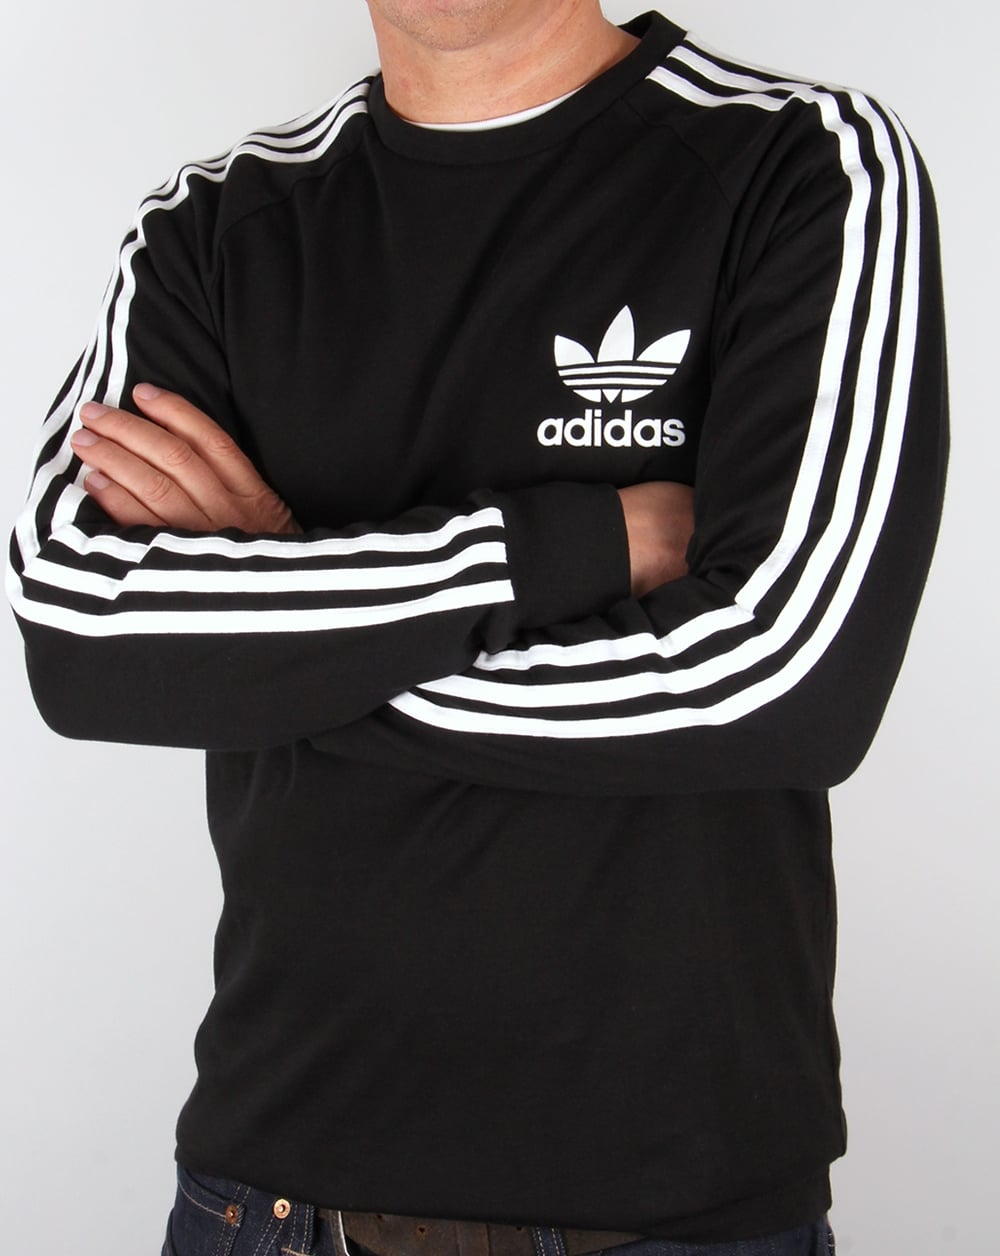 Home › T Shirts › Adidas Originals › Adidas Originals CLFN Long